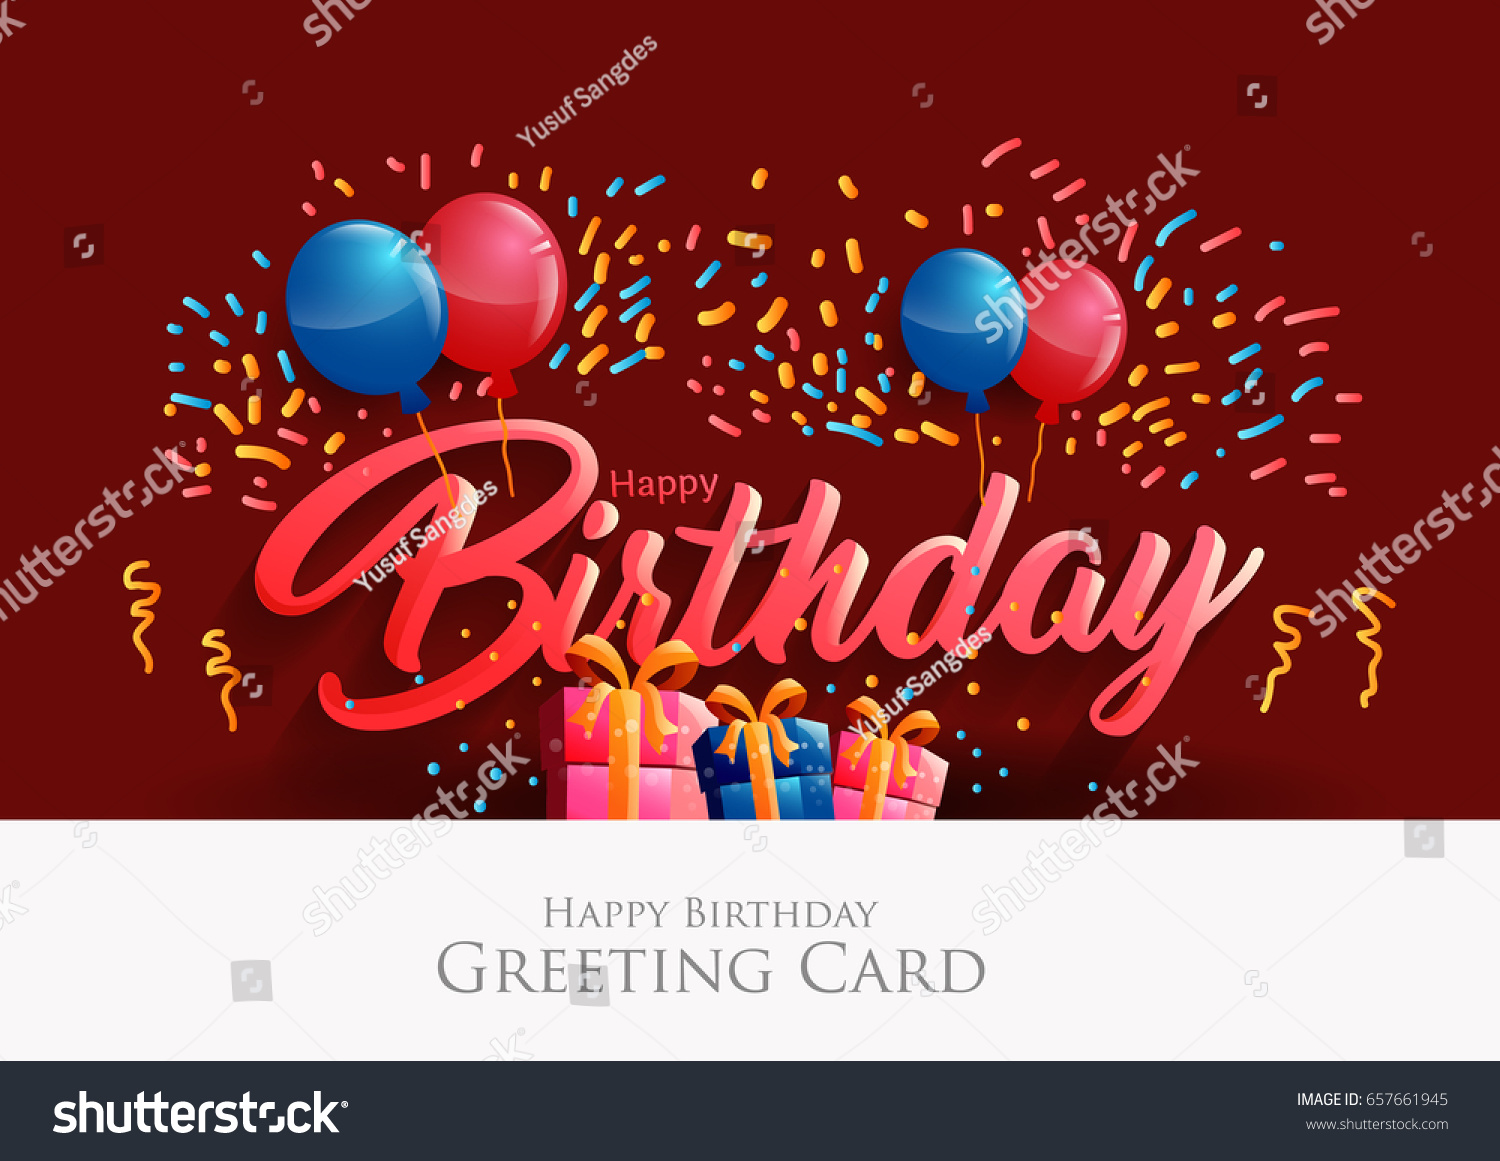 Happy Birthday Typographic Vector Design Greeting Vector – Greeting Cards for Birthday Images